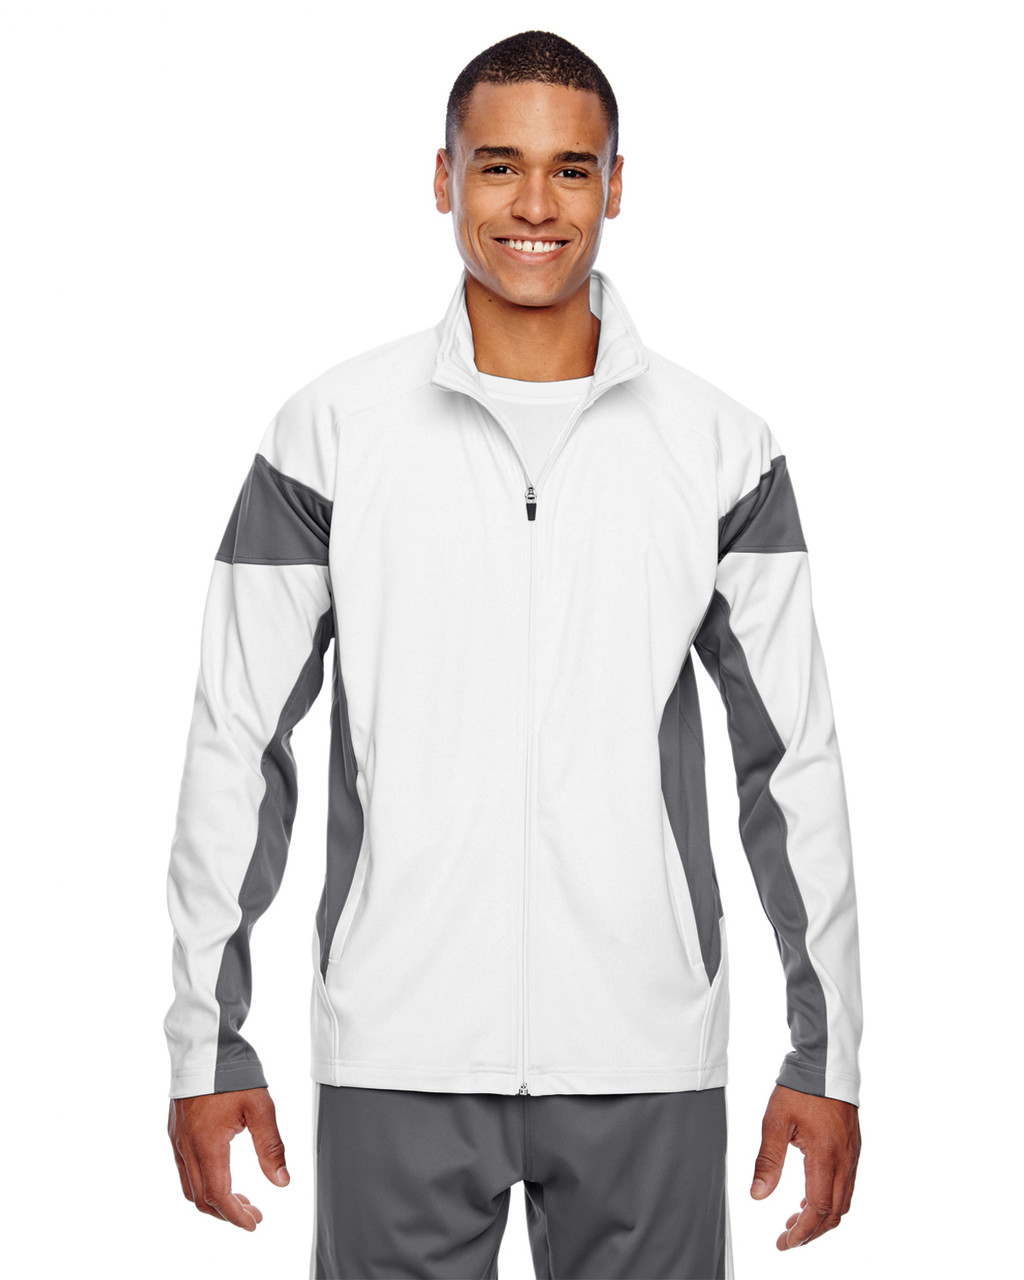 White/Graphite - TT34 Team 365 Men's Performance Full-Zip Jacket | Blankclothing.ca